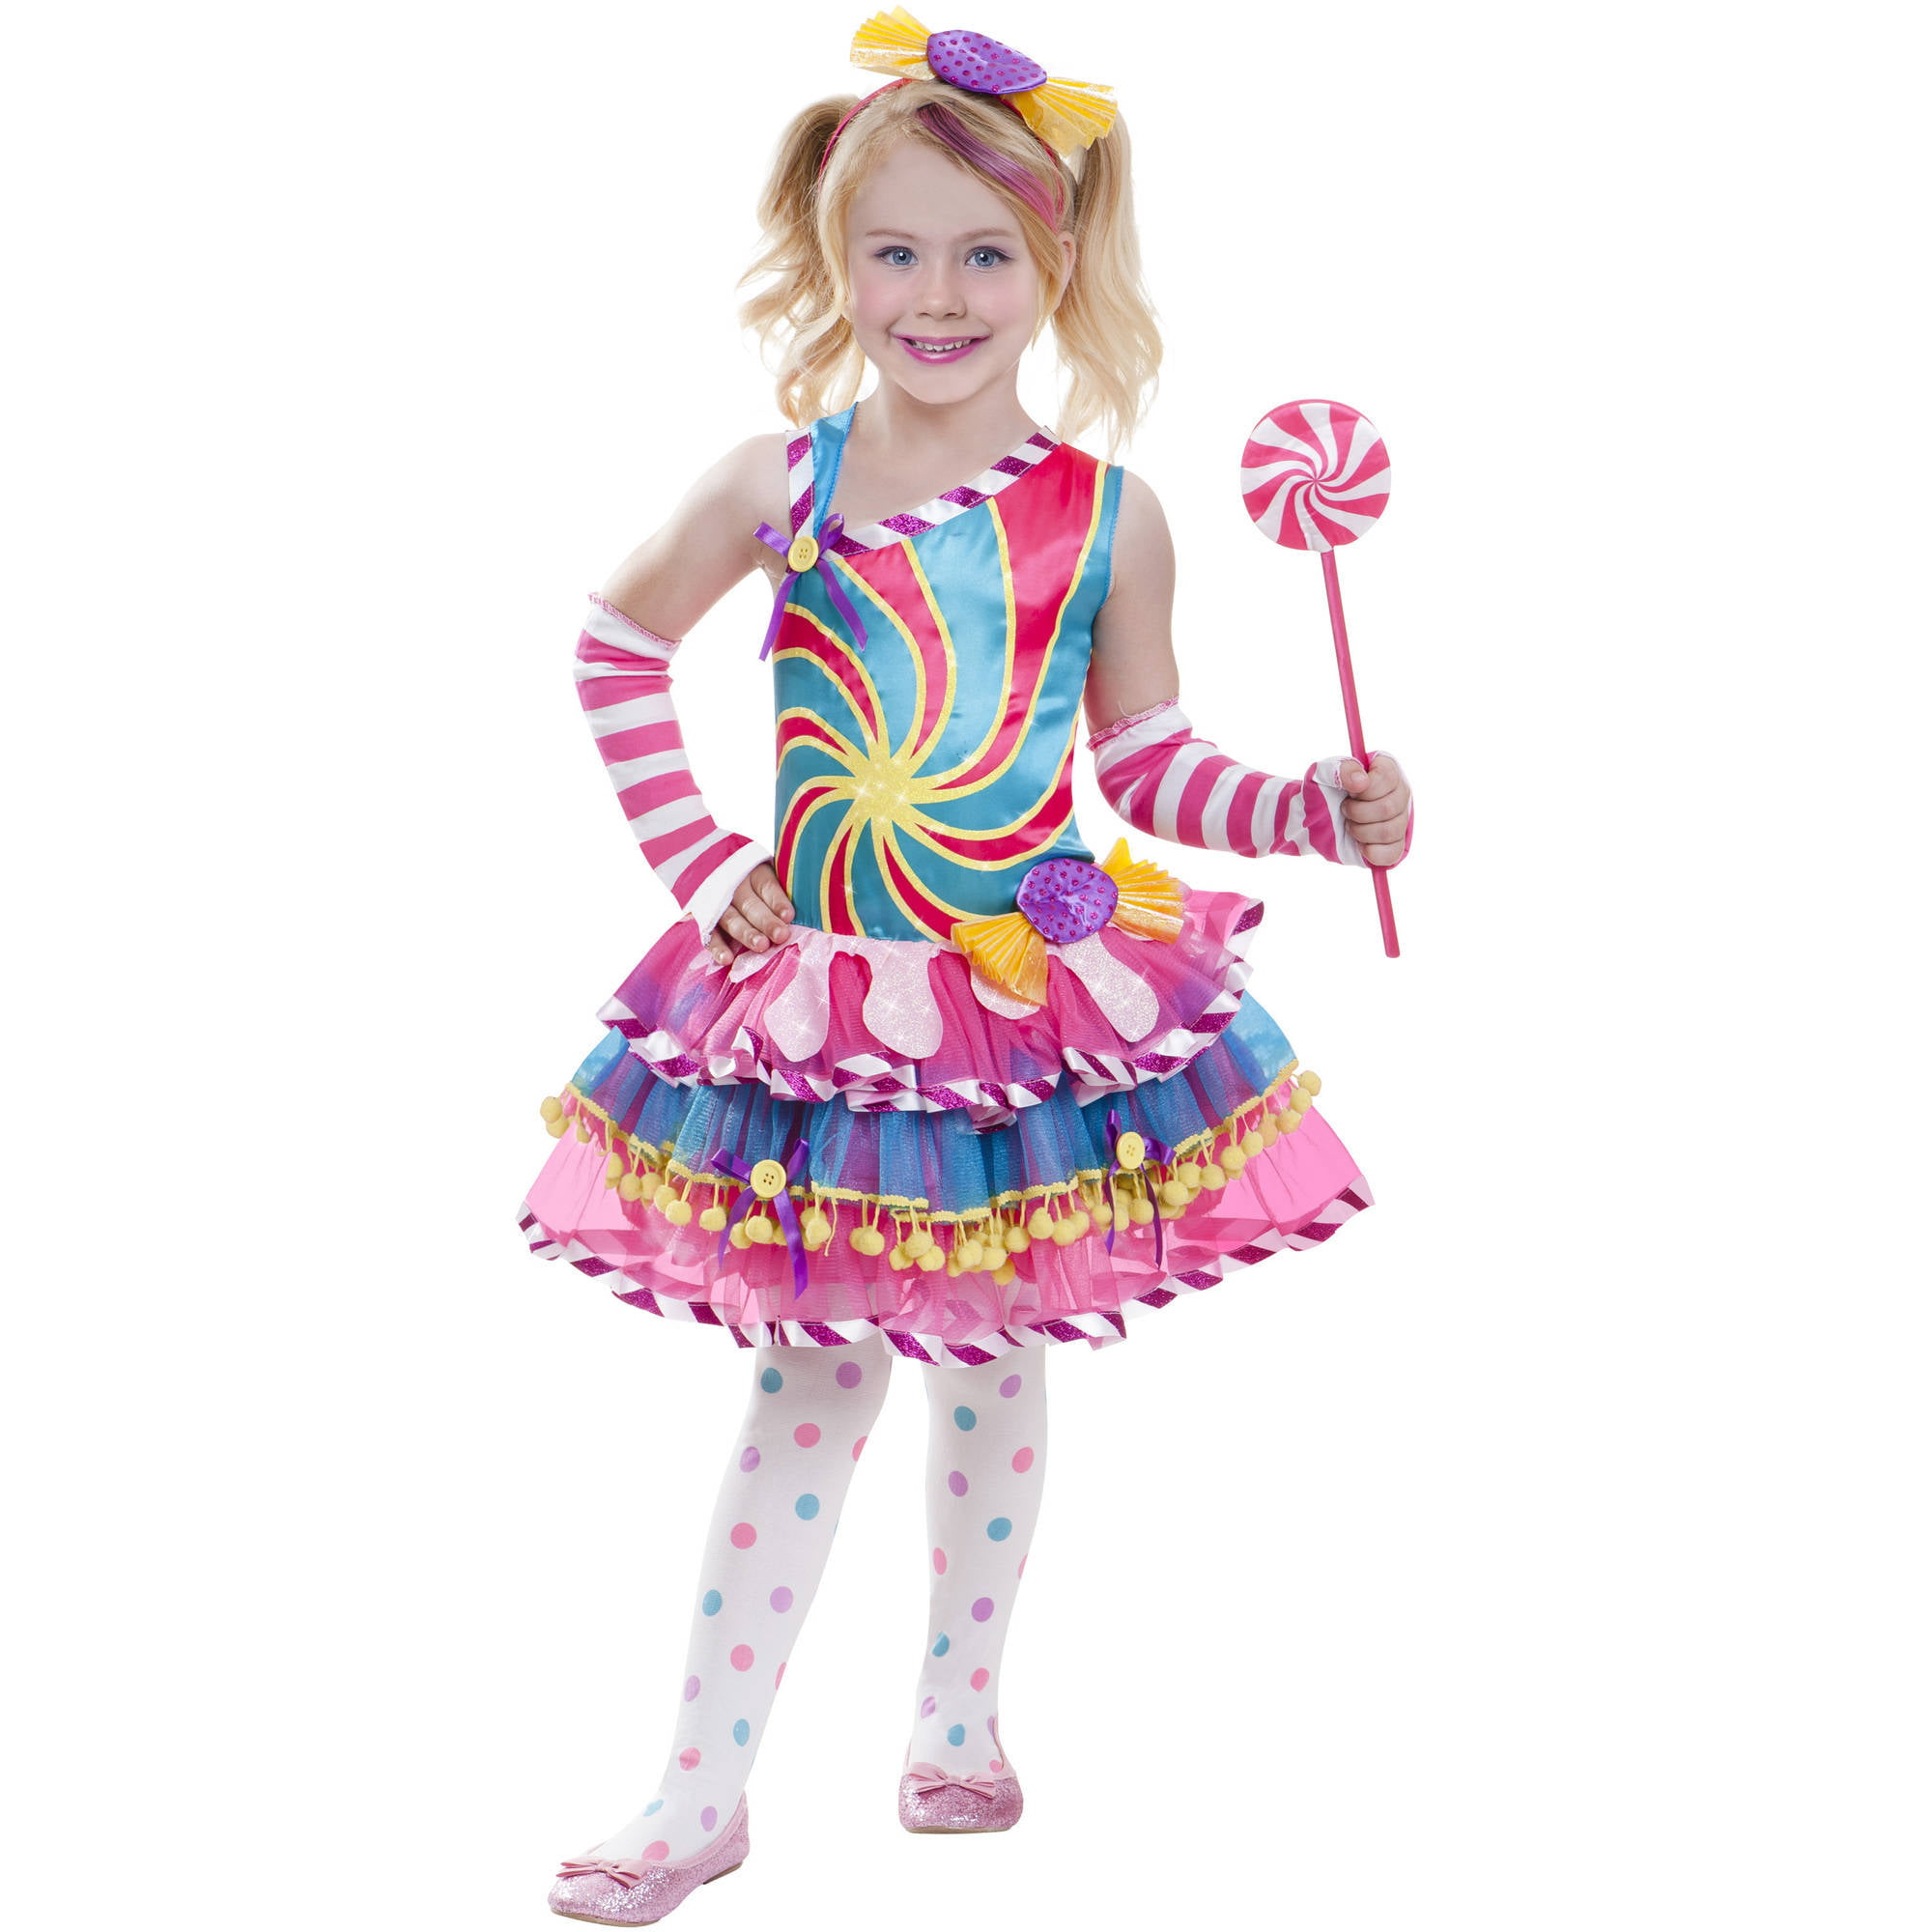 candy girl child halloween costume walmartcom - Walmart Halloween Costumes For Baby